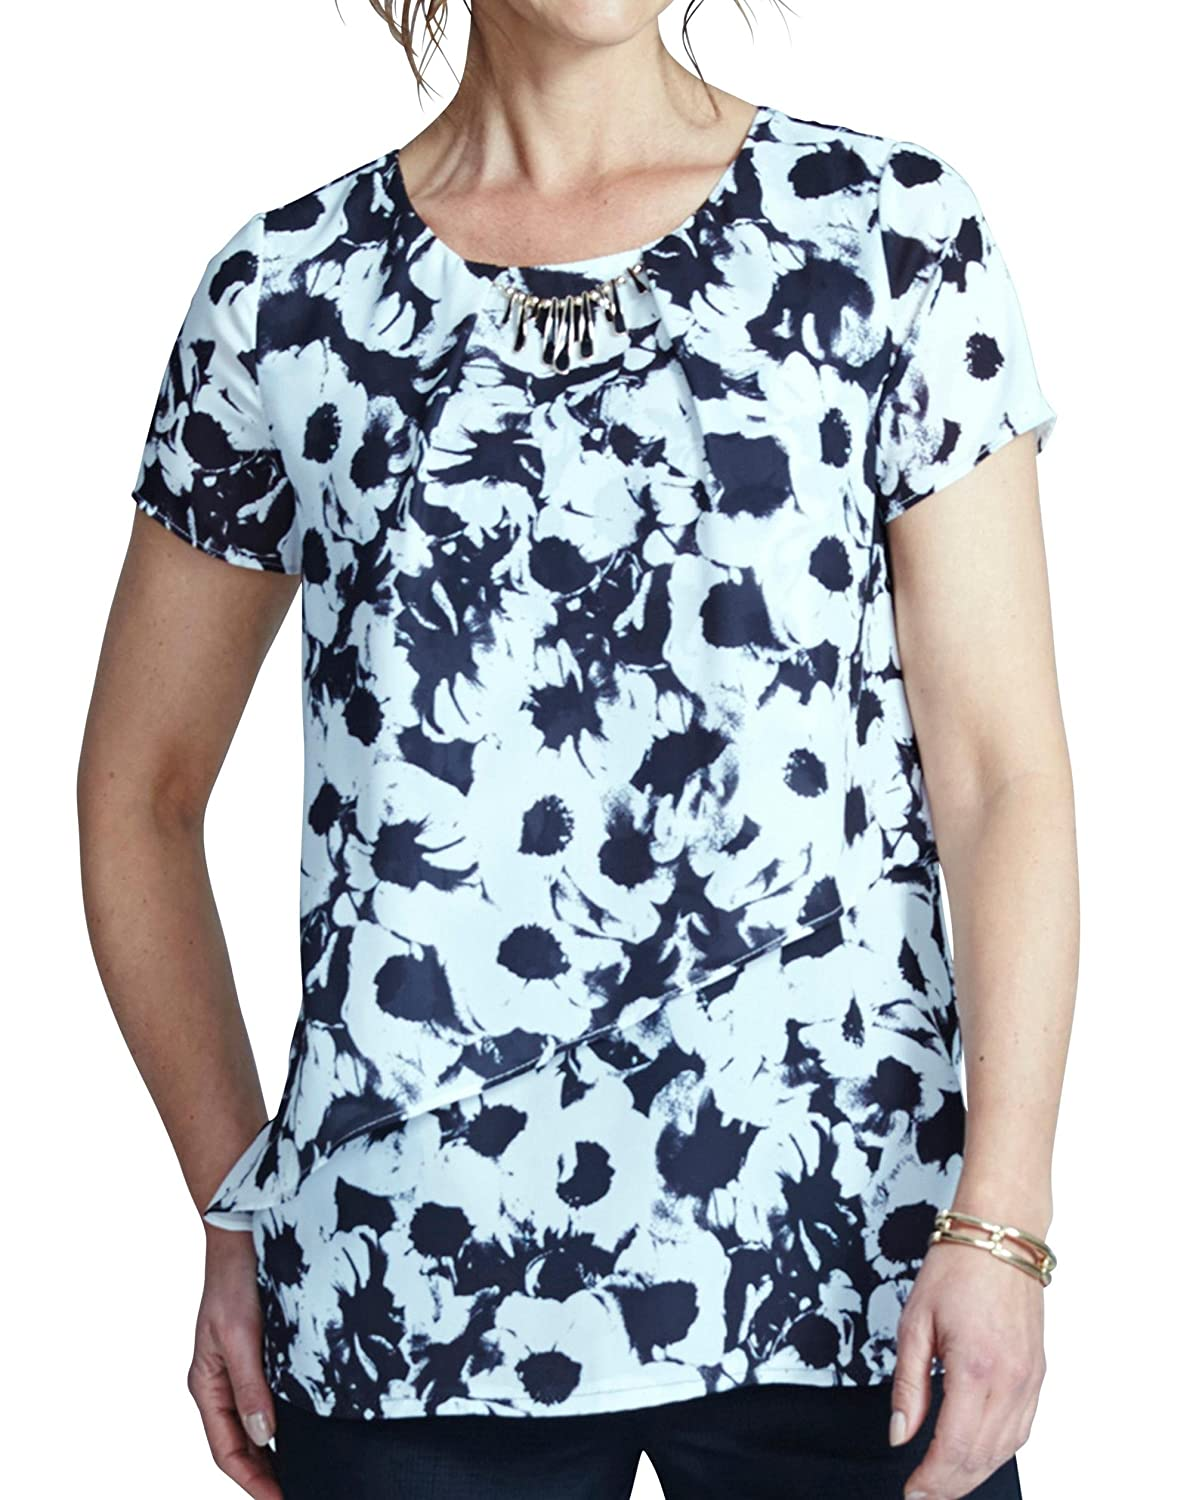 Womens Together Layered Print Top JD Williams